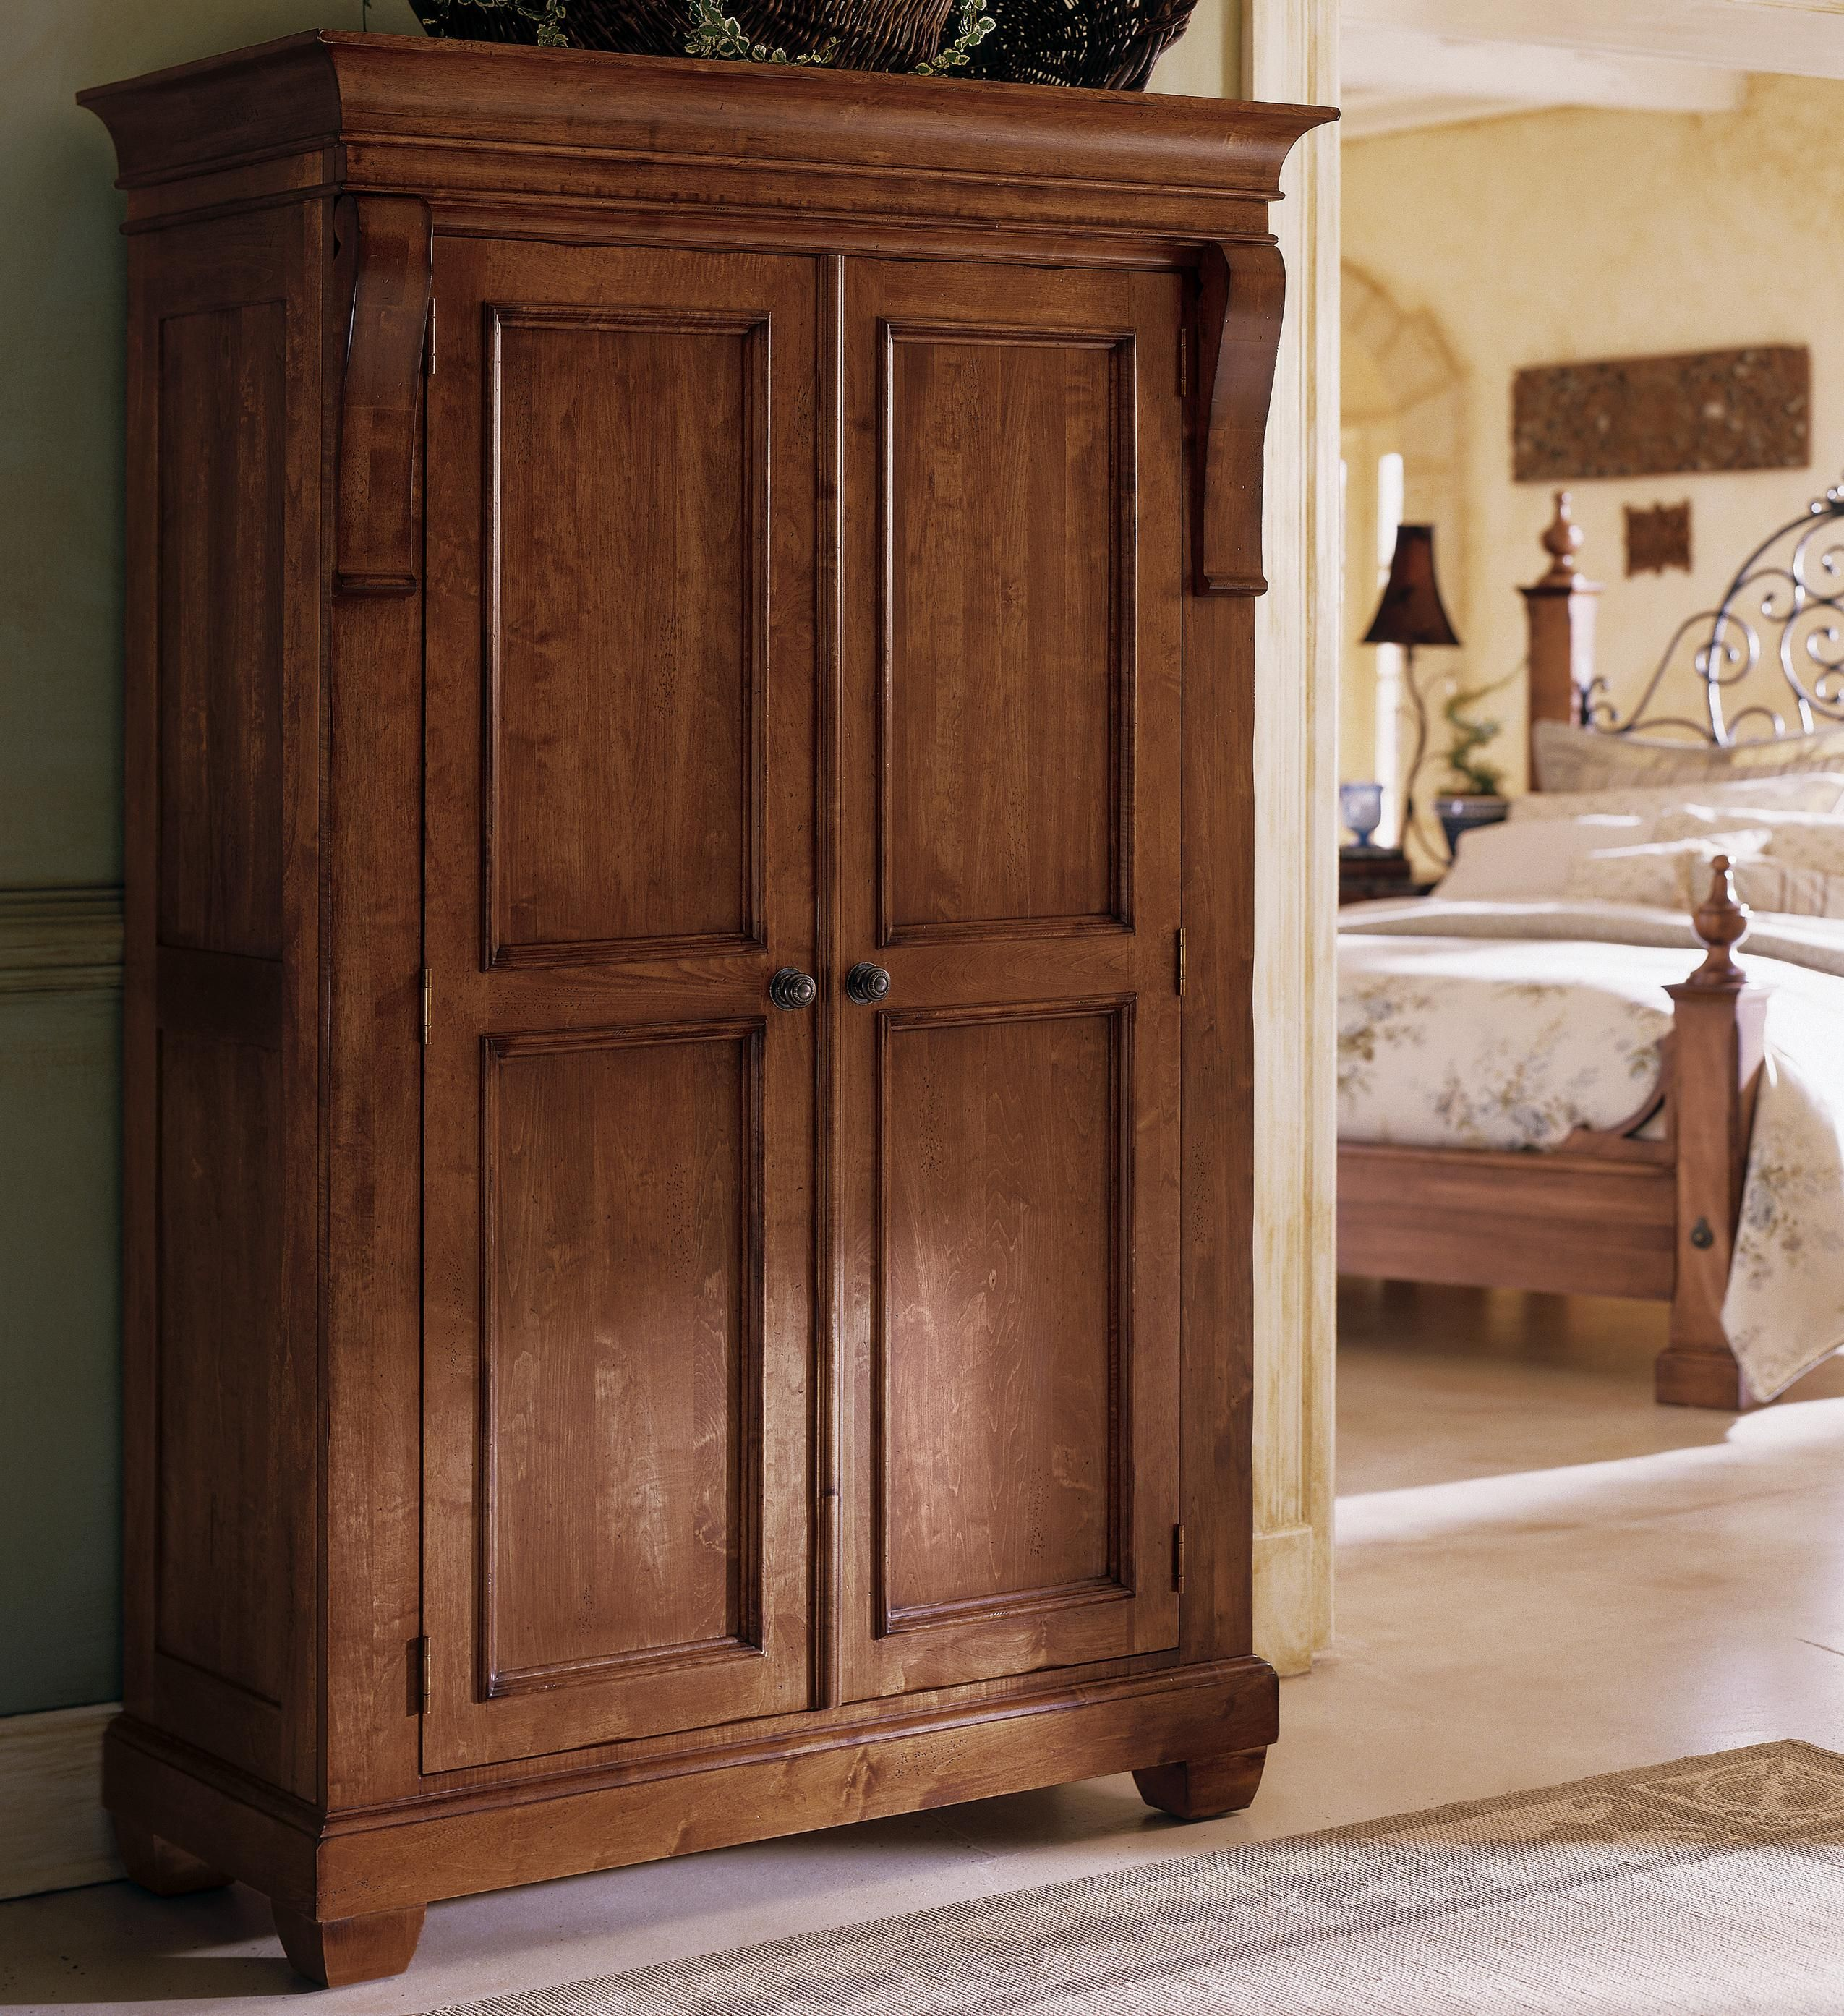 Store Your Clothes Neatly With Armoire Wardrobe Astounding - Kincaid tuscano bedroom furniture